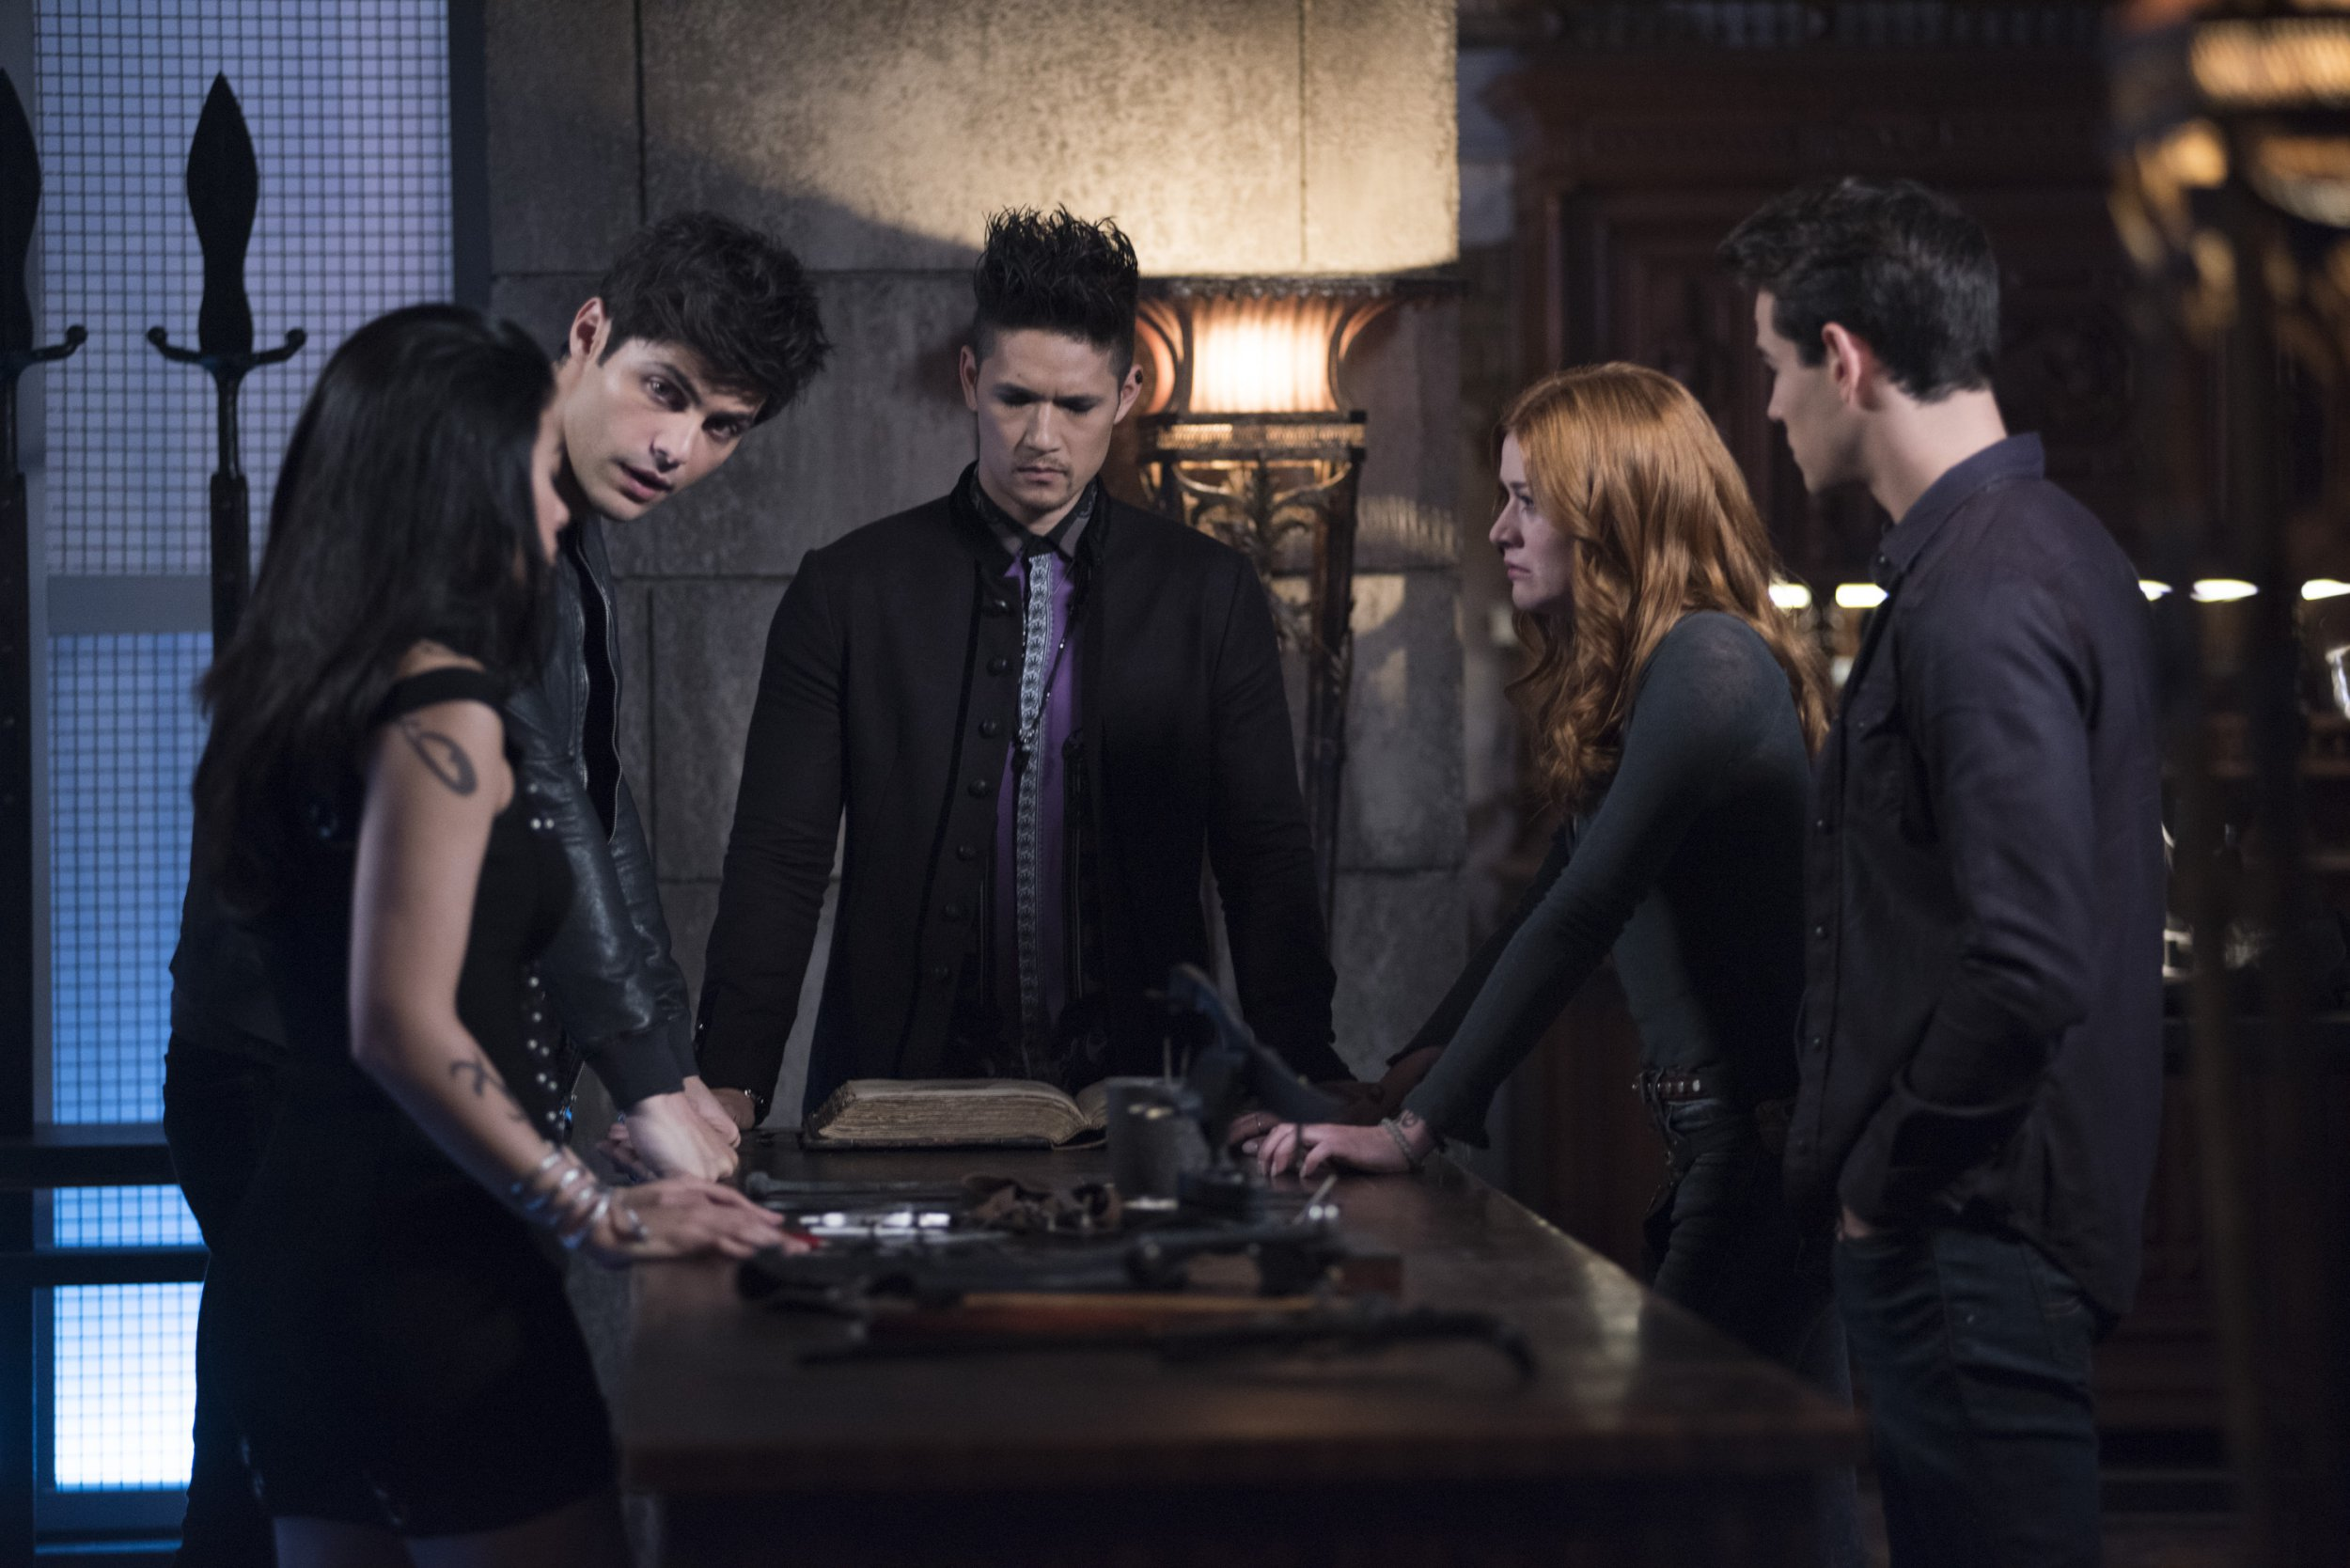 """SHADOWHUNTERS - """"Salt In The Wound"""" - With the Owls identity revealed, Alec, Isabelle, and Clary head to Alicante to try and find a way to stop him. Luke and Simon team up to track Liliths latest possible victim. Maia reflects on her past. This episode of """"Shadowhunters"""" airs Tuesday, May 1 (8:00 - 9:00 p.m. EDT) on Freeform. (John Medland/Freeform via Getty Images) EMERAUDE TOUBIA, MATTHEW DADDARIO, HARRY SHUM JR., KATHERINE MCNAMARA, ALBERTO ROSENDE"""